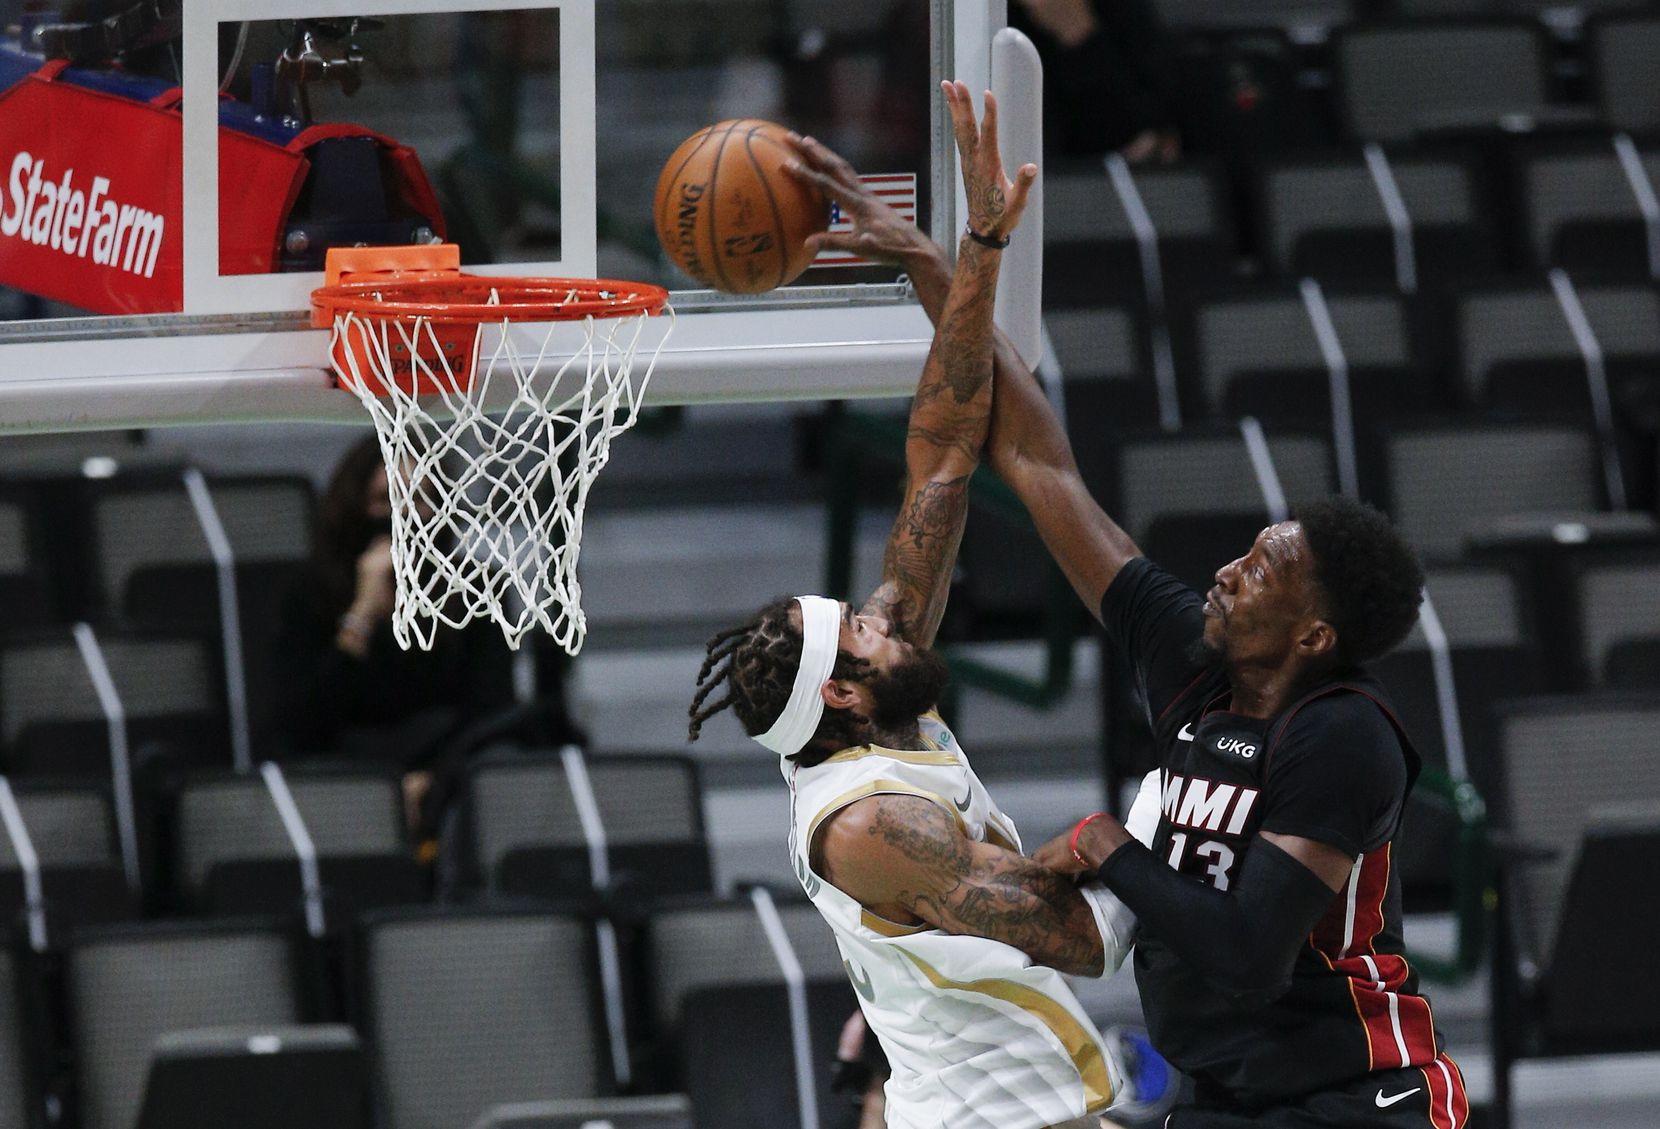 Miami Heat forward Bam Adebayo (13) is fouled by Dallas Mavericks forward Willie Cauley-Stein (33) during the first half of an NBA basketball game, Friday, January 1, 2021. (Brandon Wade/Special Contributor)